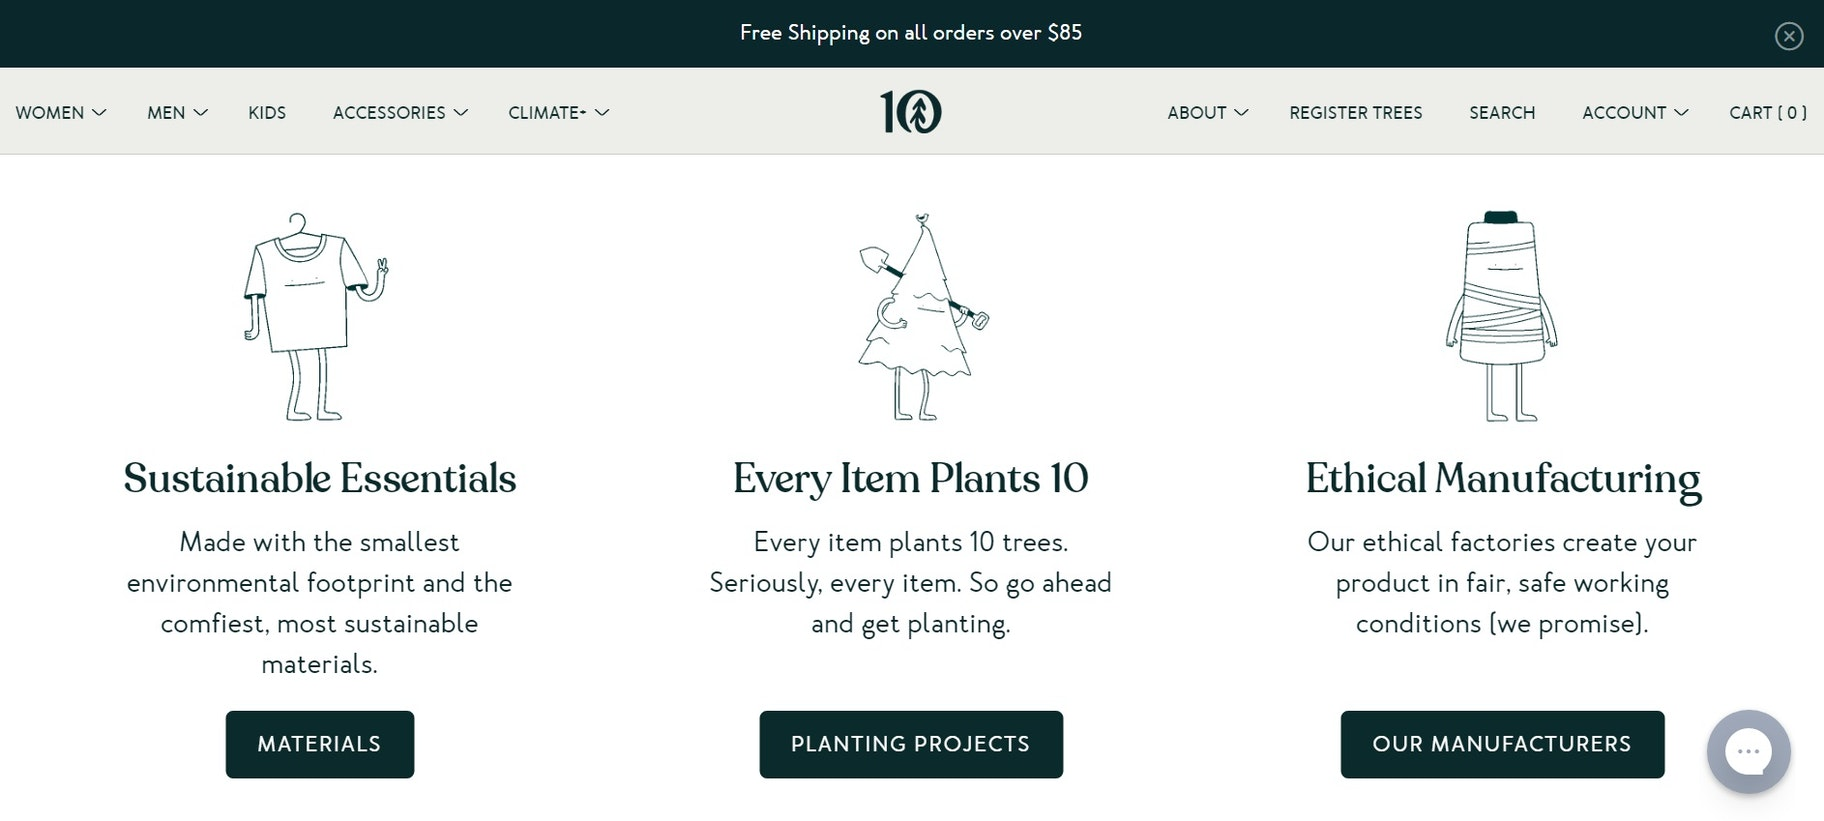 Online Retail Business Examples